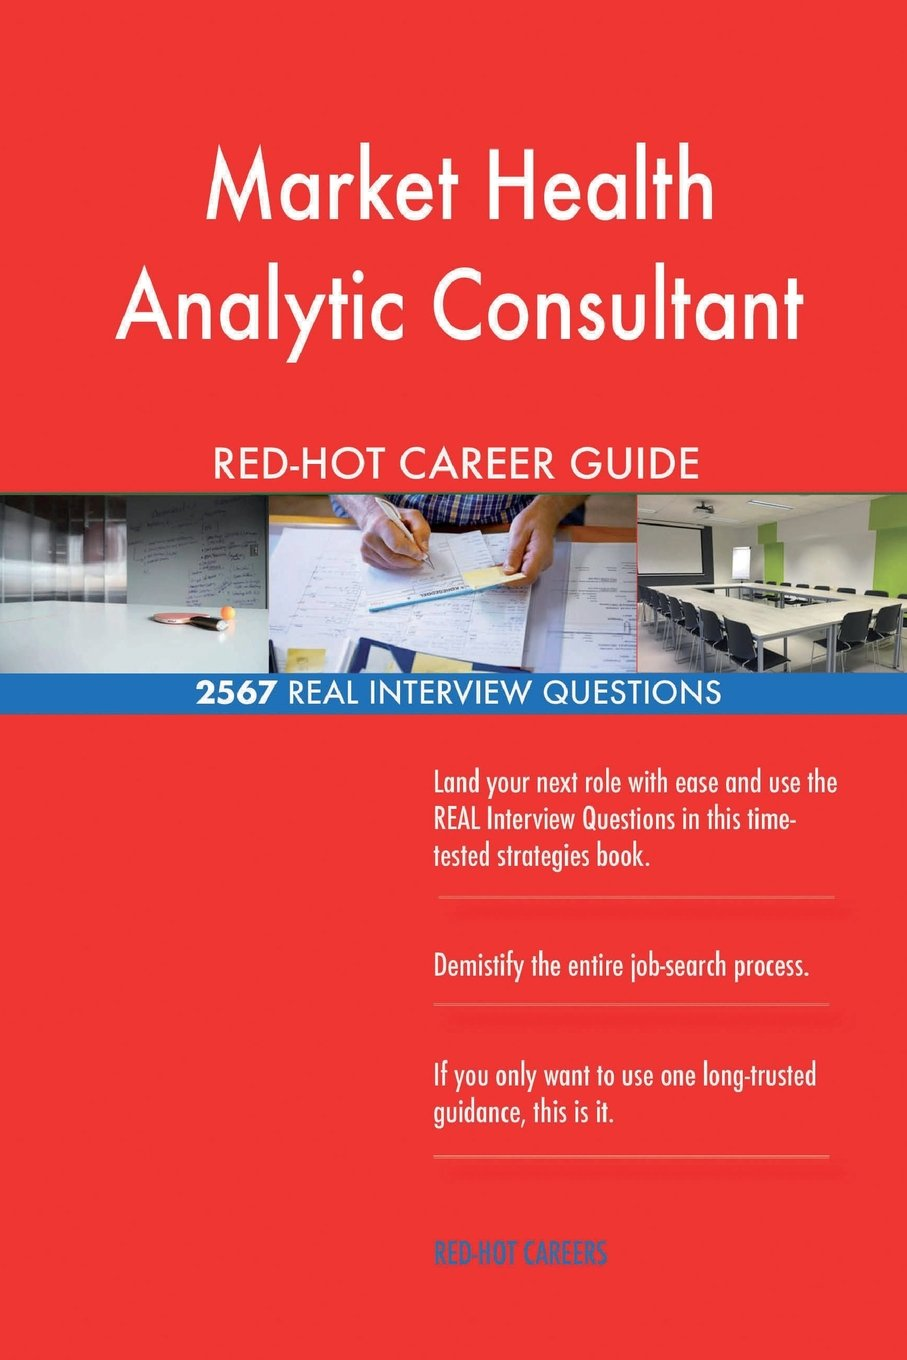 Download Market Health Analytic Consultant RED-HOT Career; 2567 REAL Interview Questions ebook